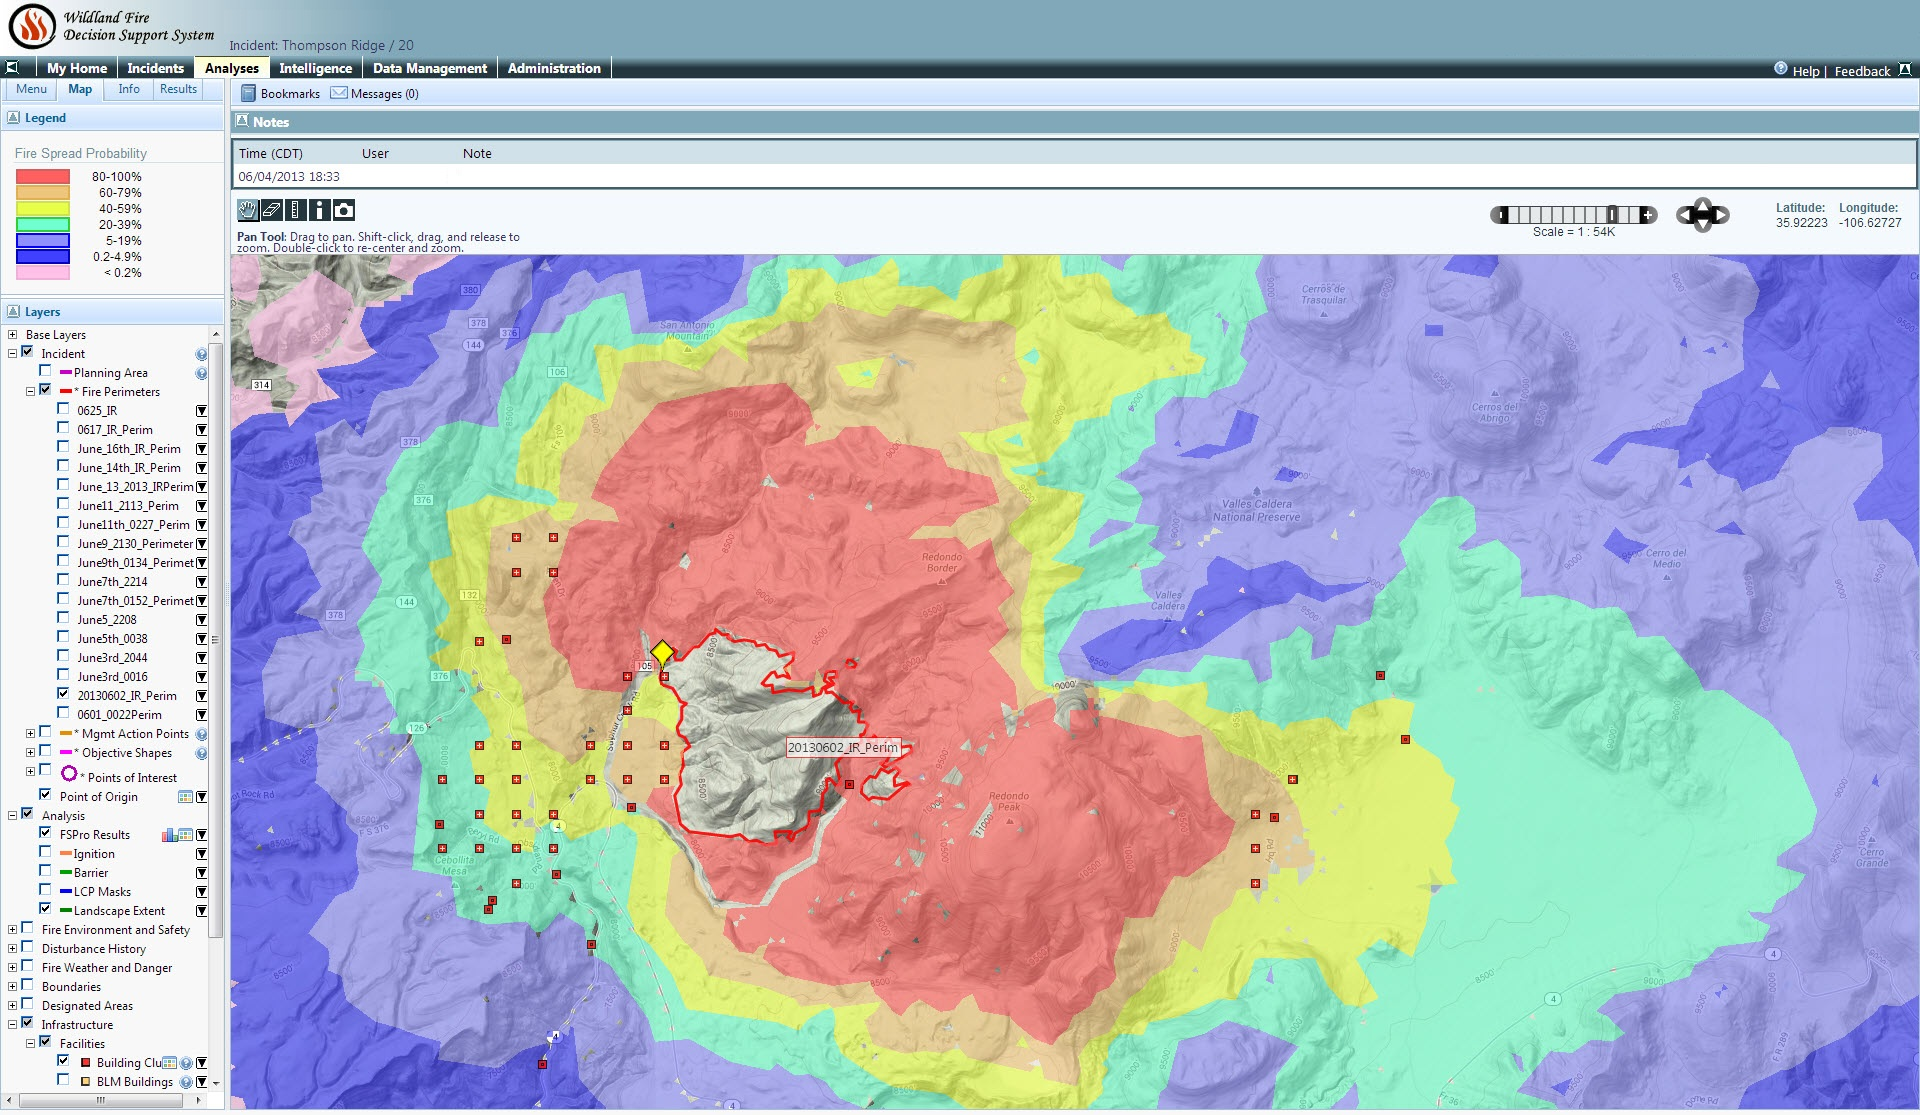 High Park Fire Map.Data Sharing Leads To Powerful Tools For Fighting Fire